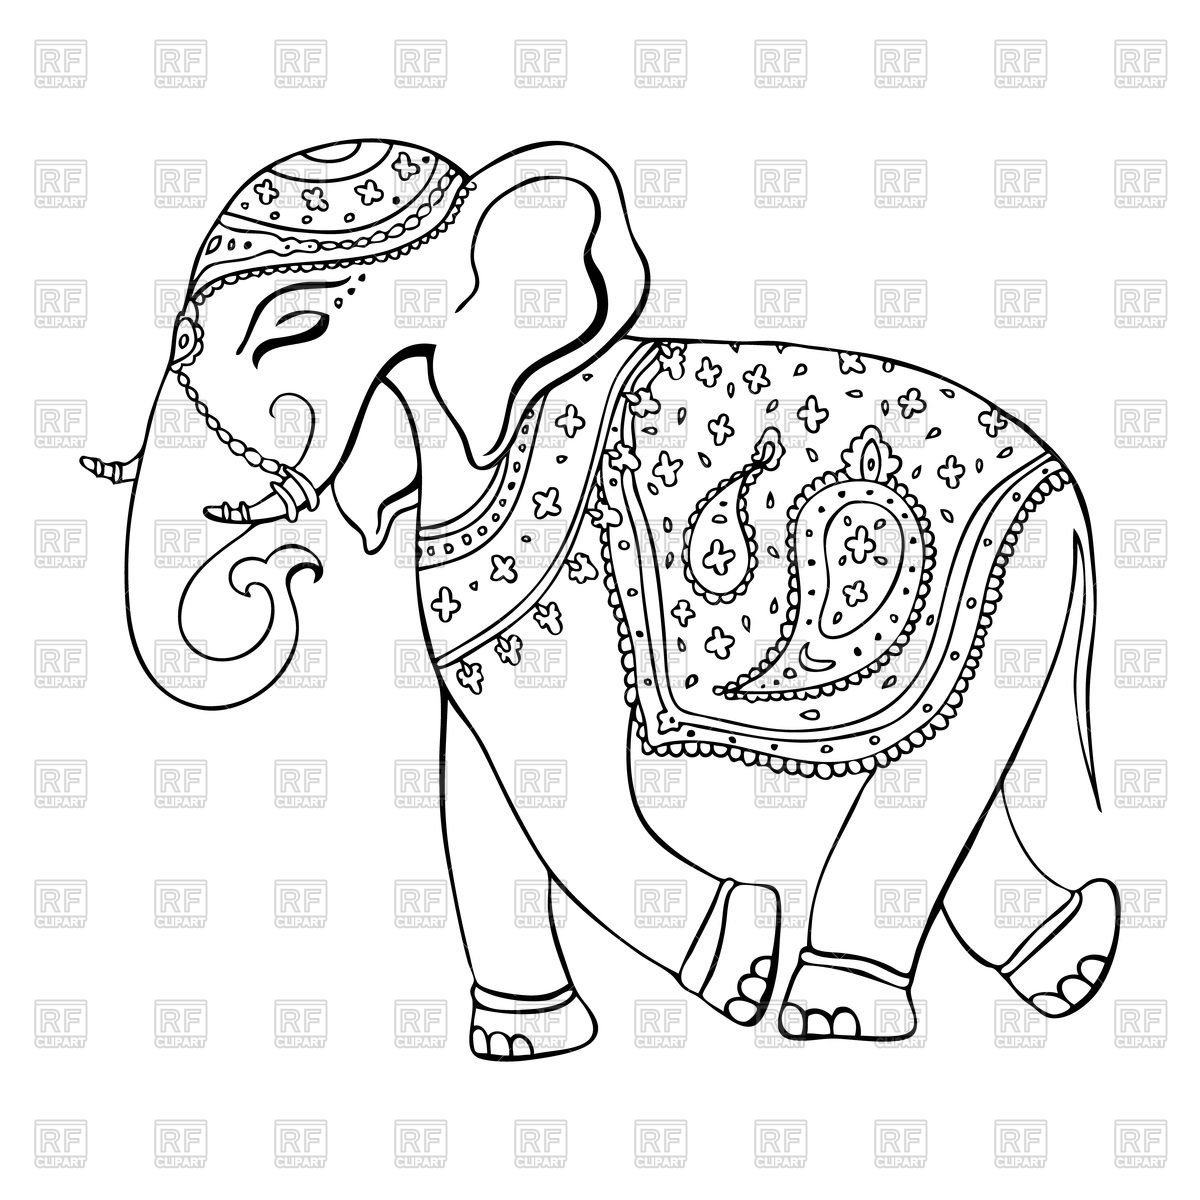 Elephant Images For Drawing at GetDrawings.com | Free for personal ...